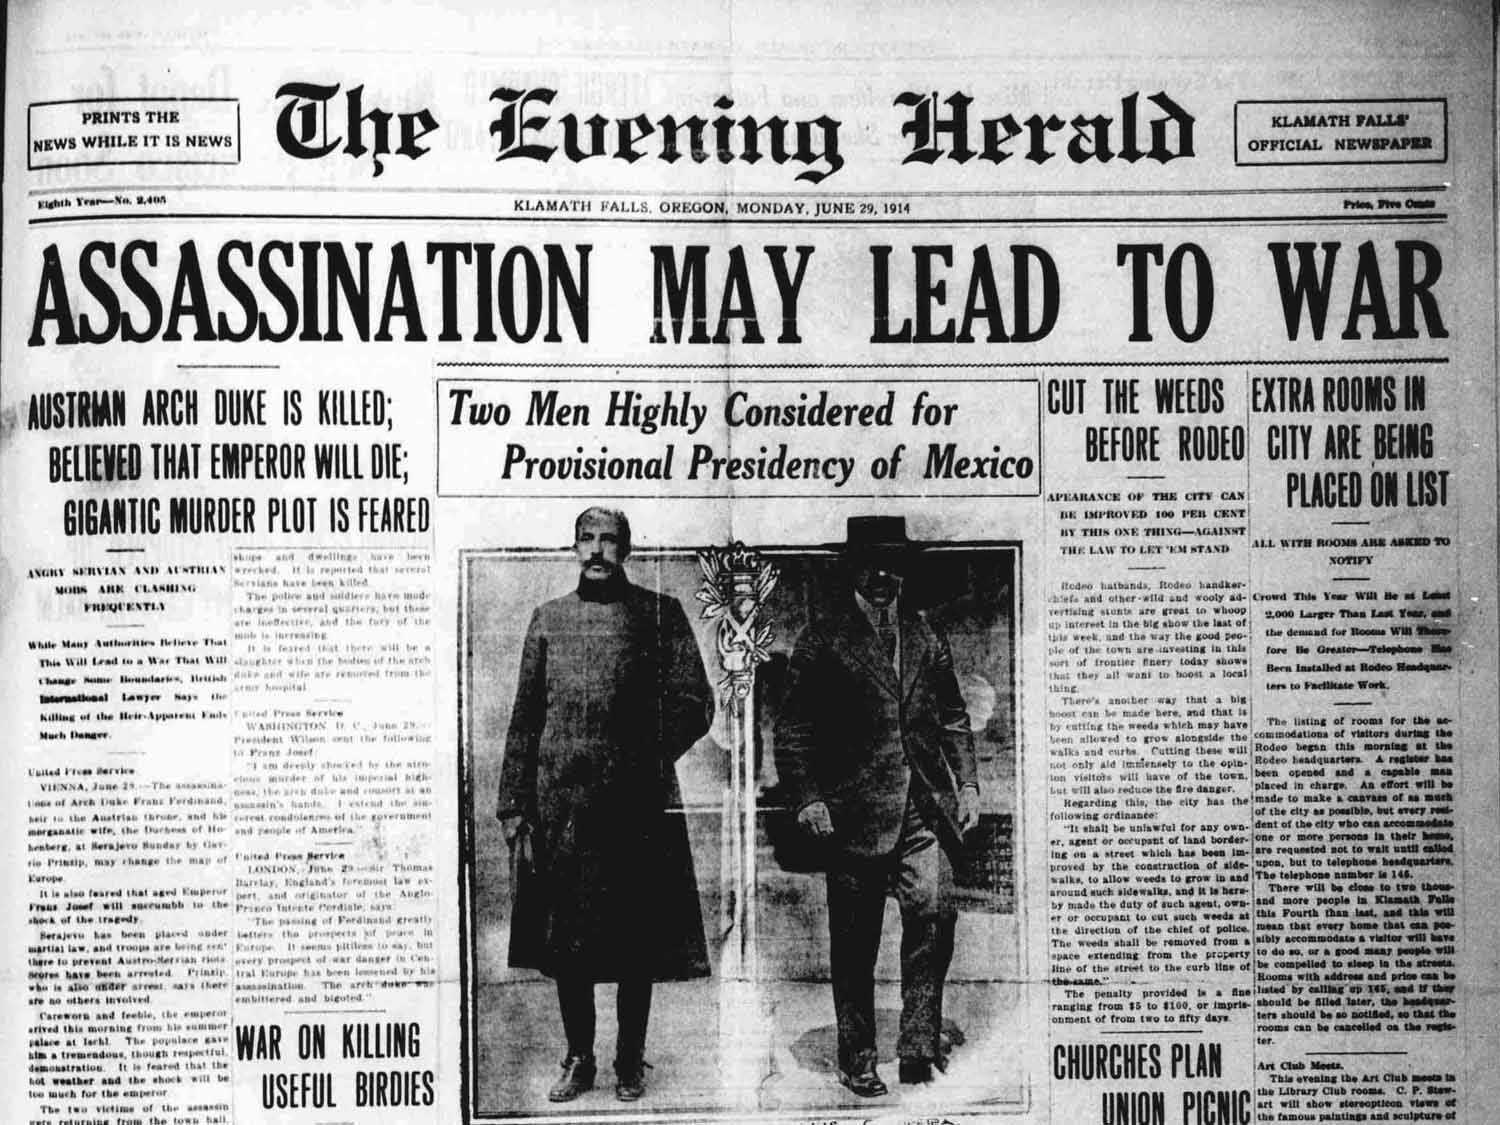 The evening herald une assassinat de l'archiduc Franz ferdinand de Habsbourg et risques de guerre